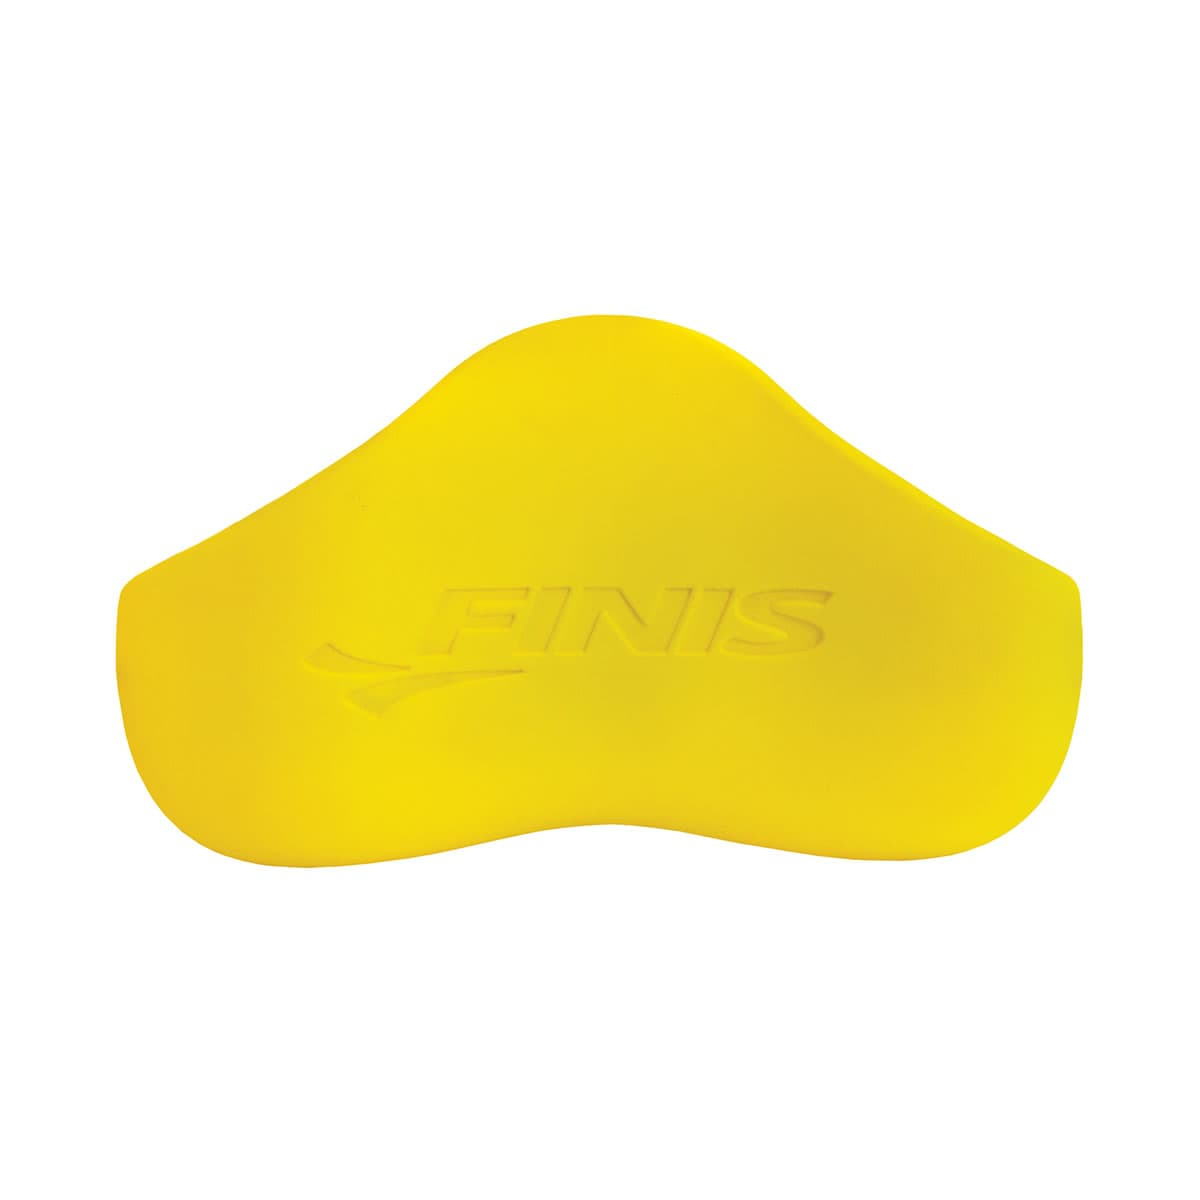 Axis Buoy - FINIS - Fin1050410